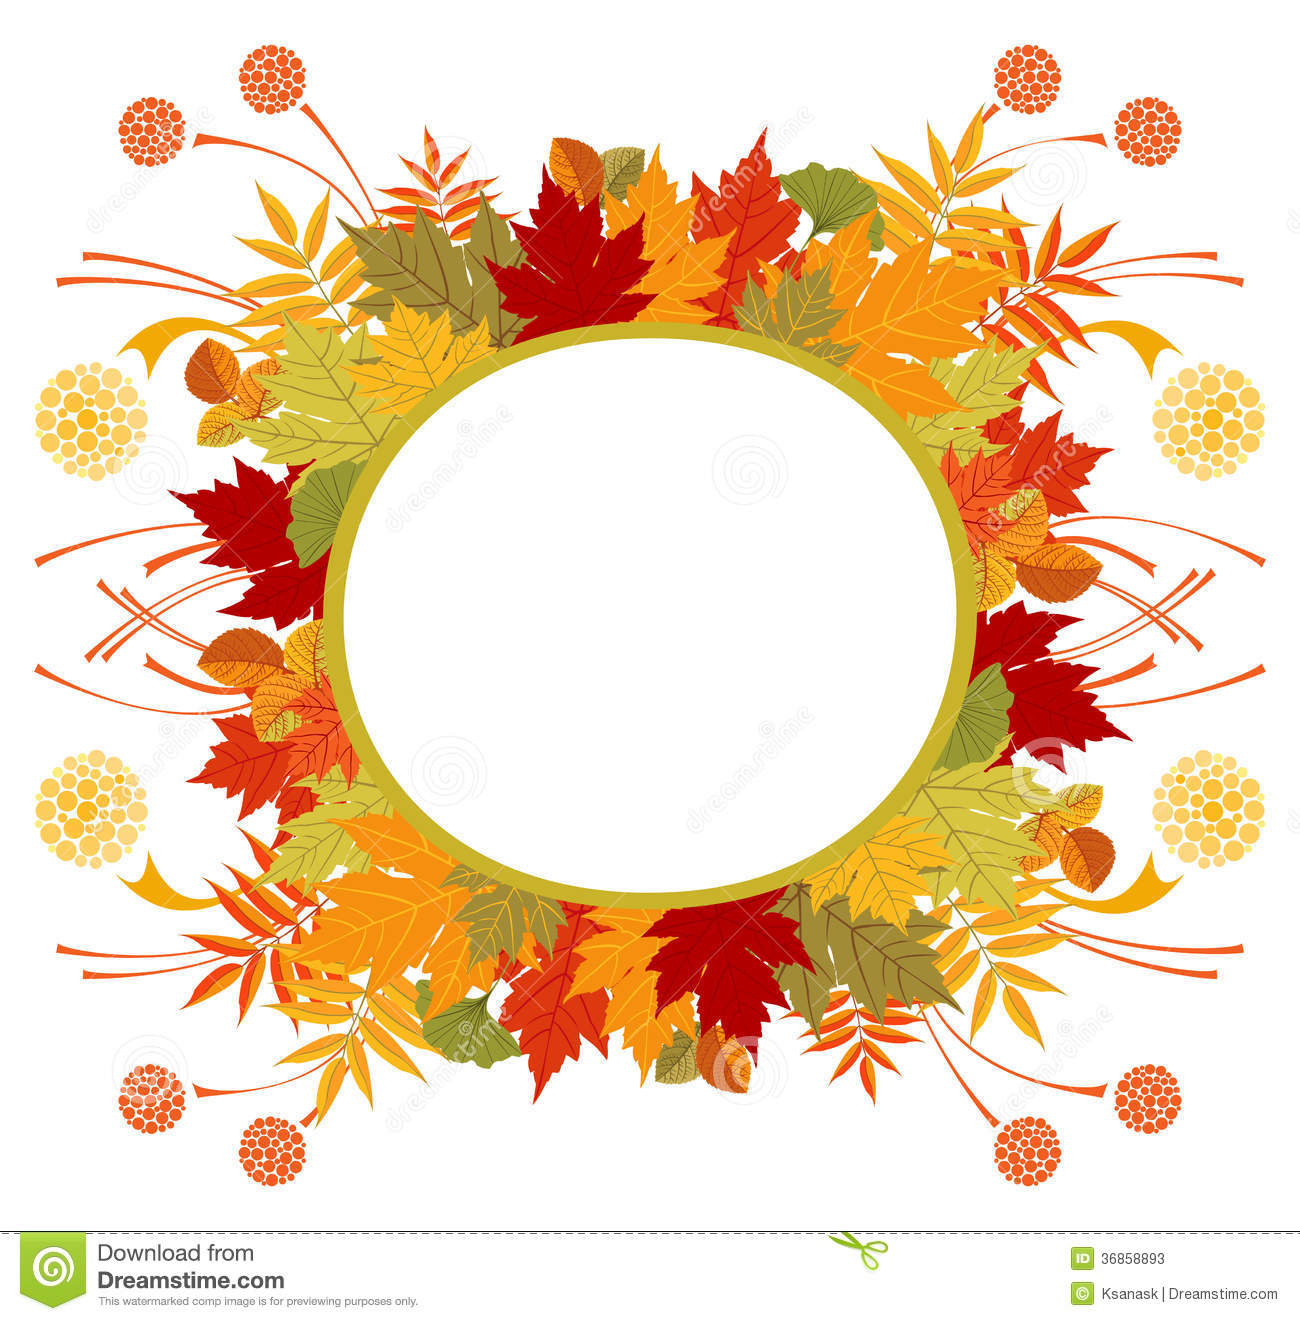 circle frame with autumn leaves stock photos image 36858893 Halloween Christian Pumpkin Clip Art Christian Pumpkin Carving Clip Art